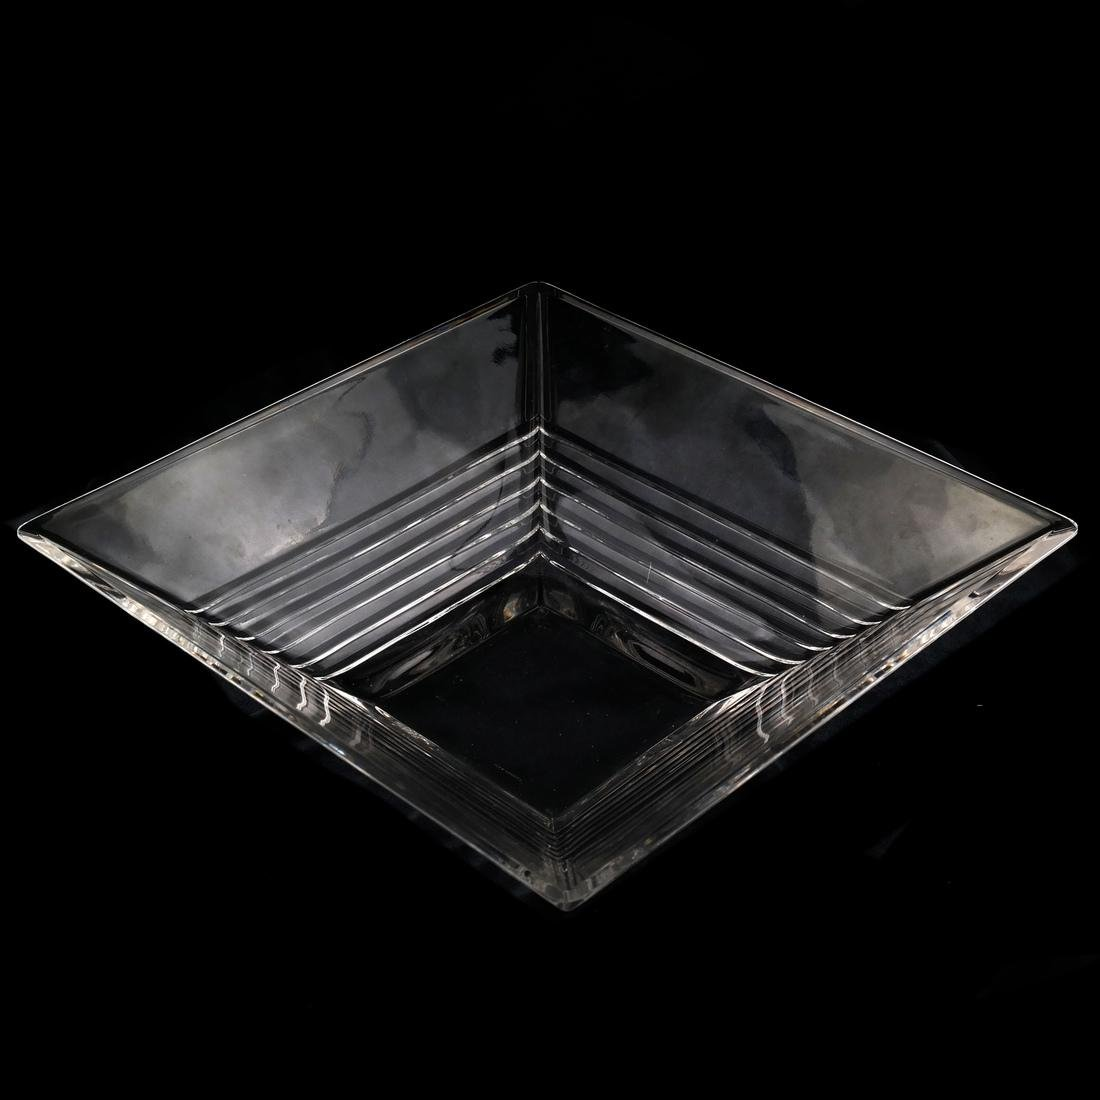 Tiffany & Co. Crystal Square Bowl